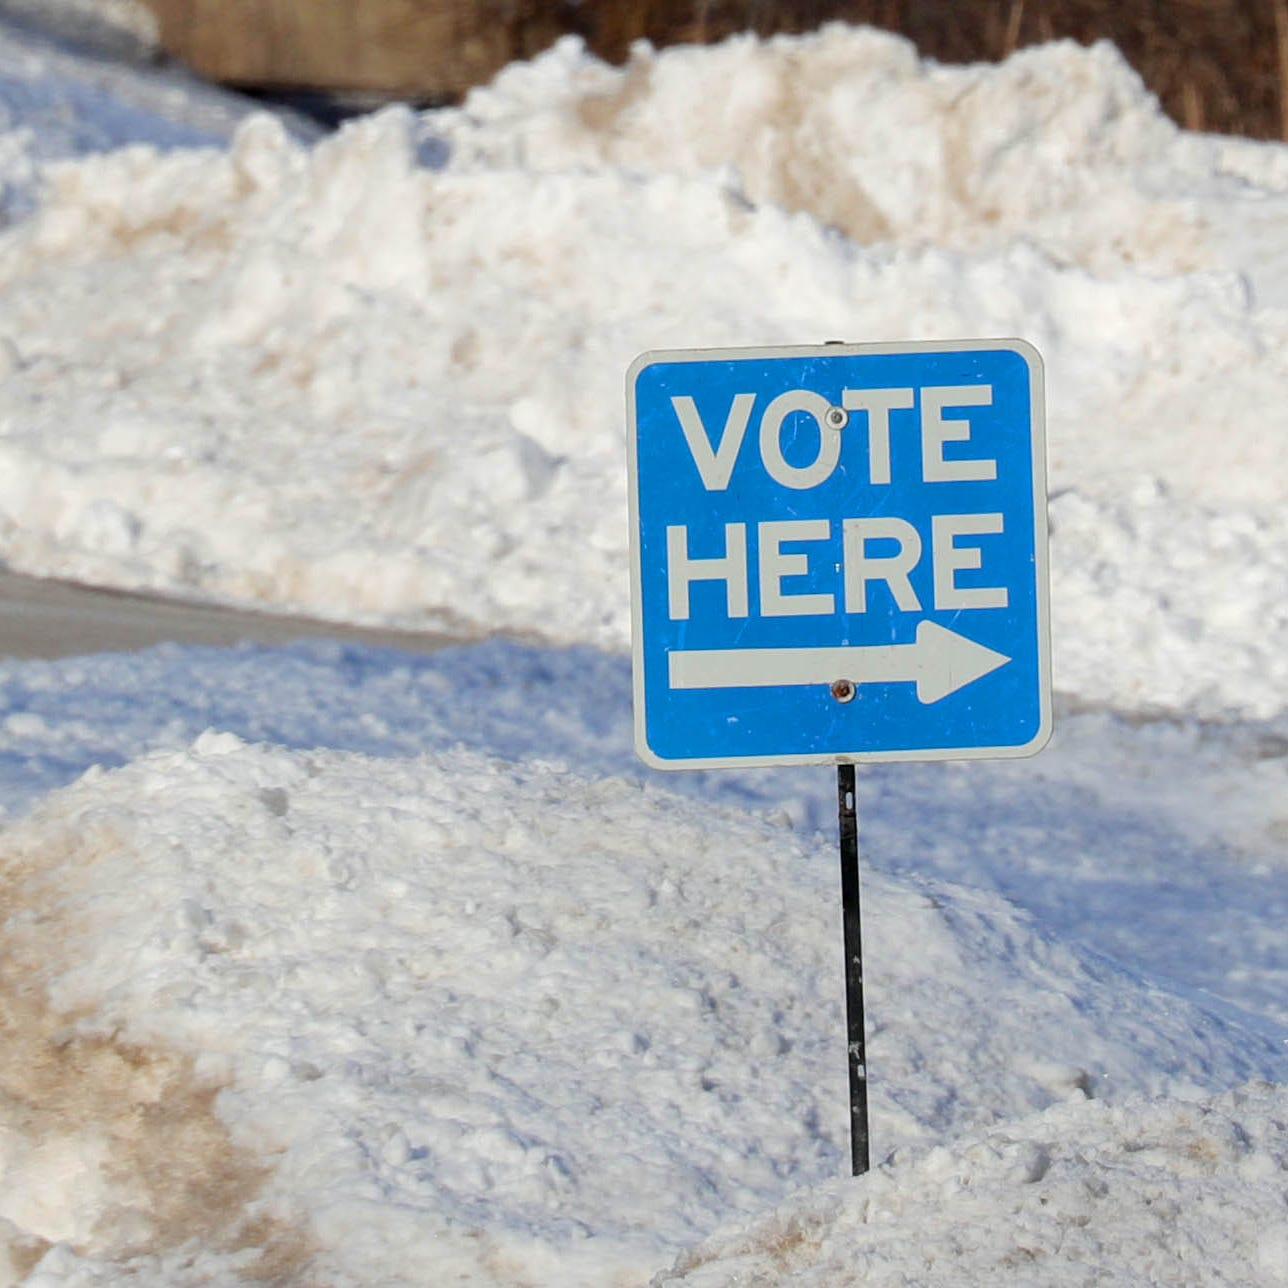 Tuesday is primary election day in Wisconsin: Here are some of the key Milwaukee-area races